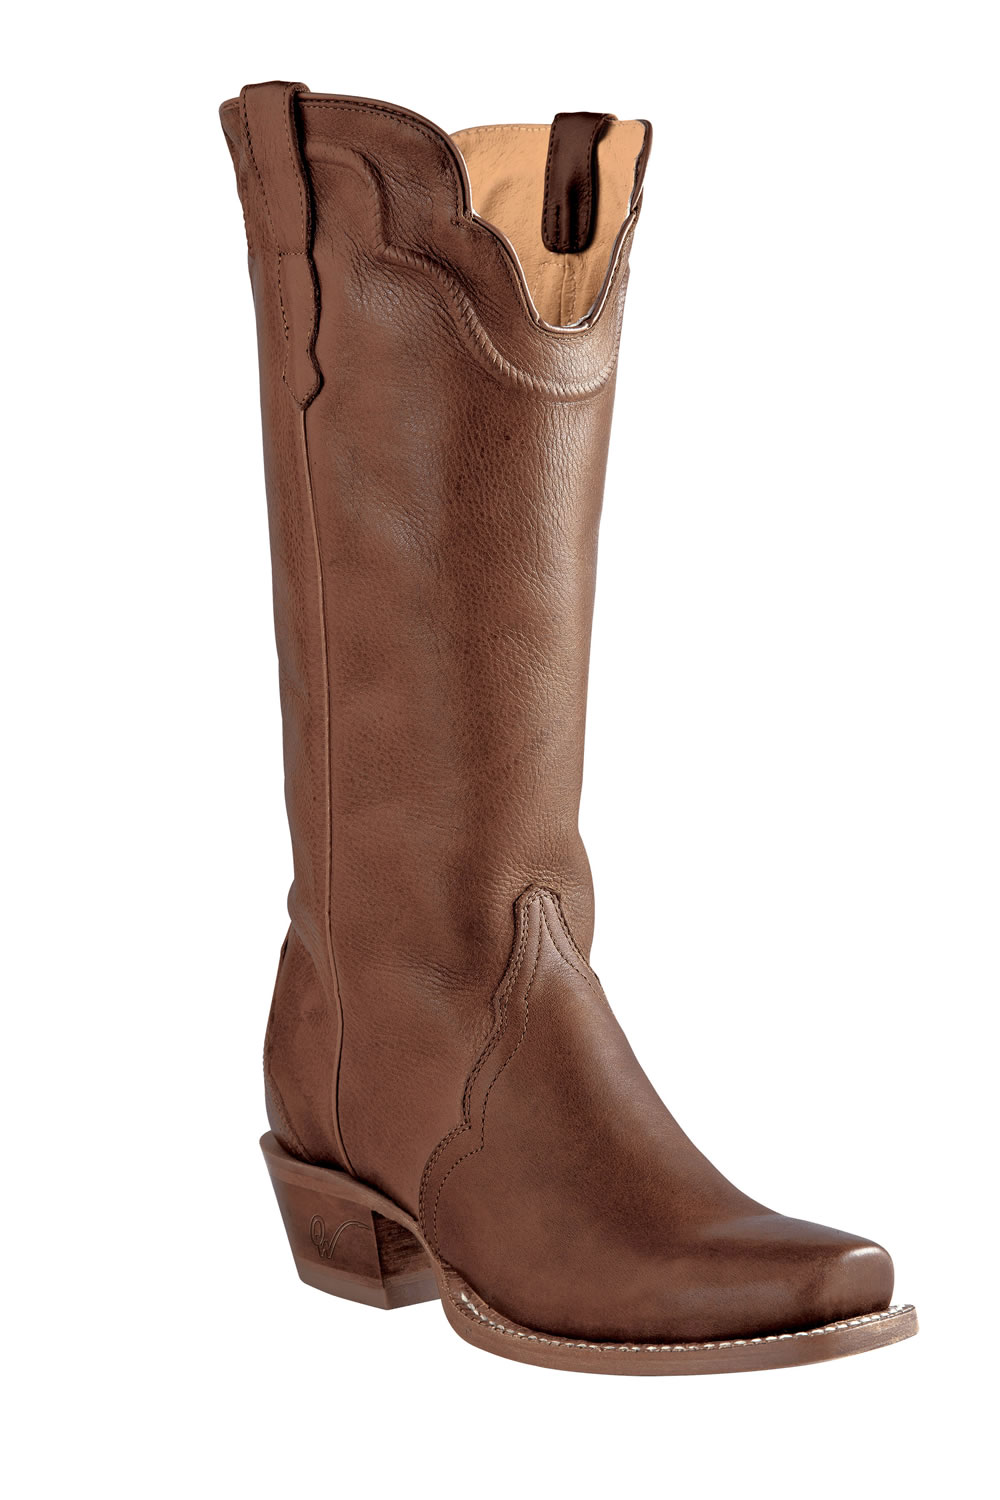 ddd0253fd30 Old West Outlaw Women's Narrrow Square Toe Tri-Ad Boots - Adrian Tan